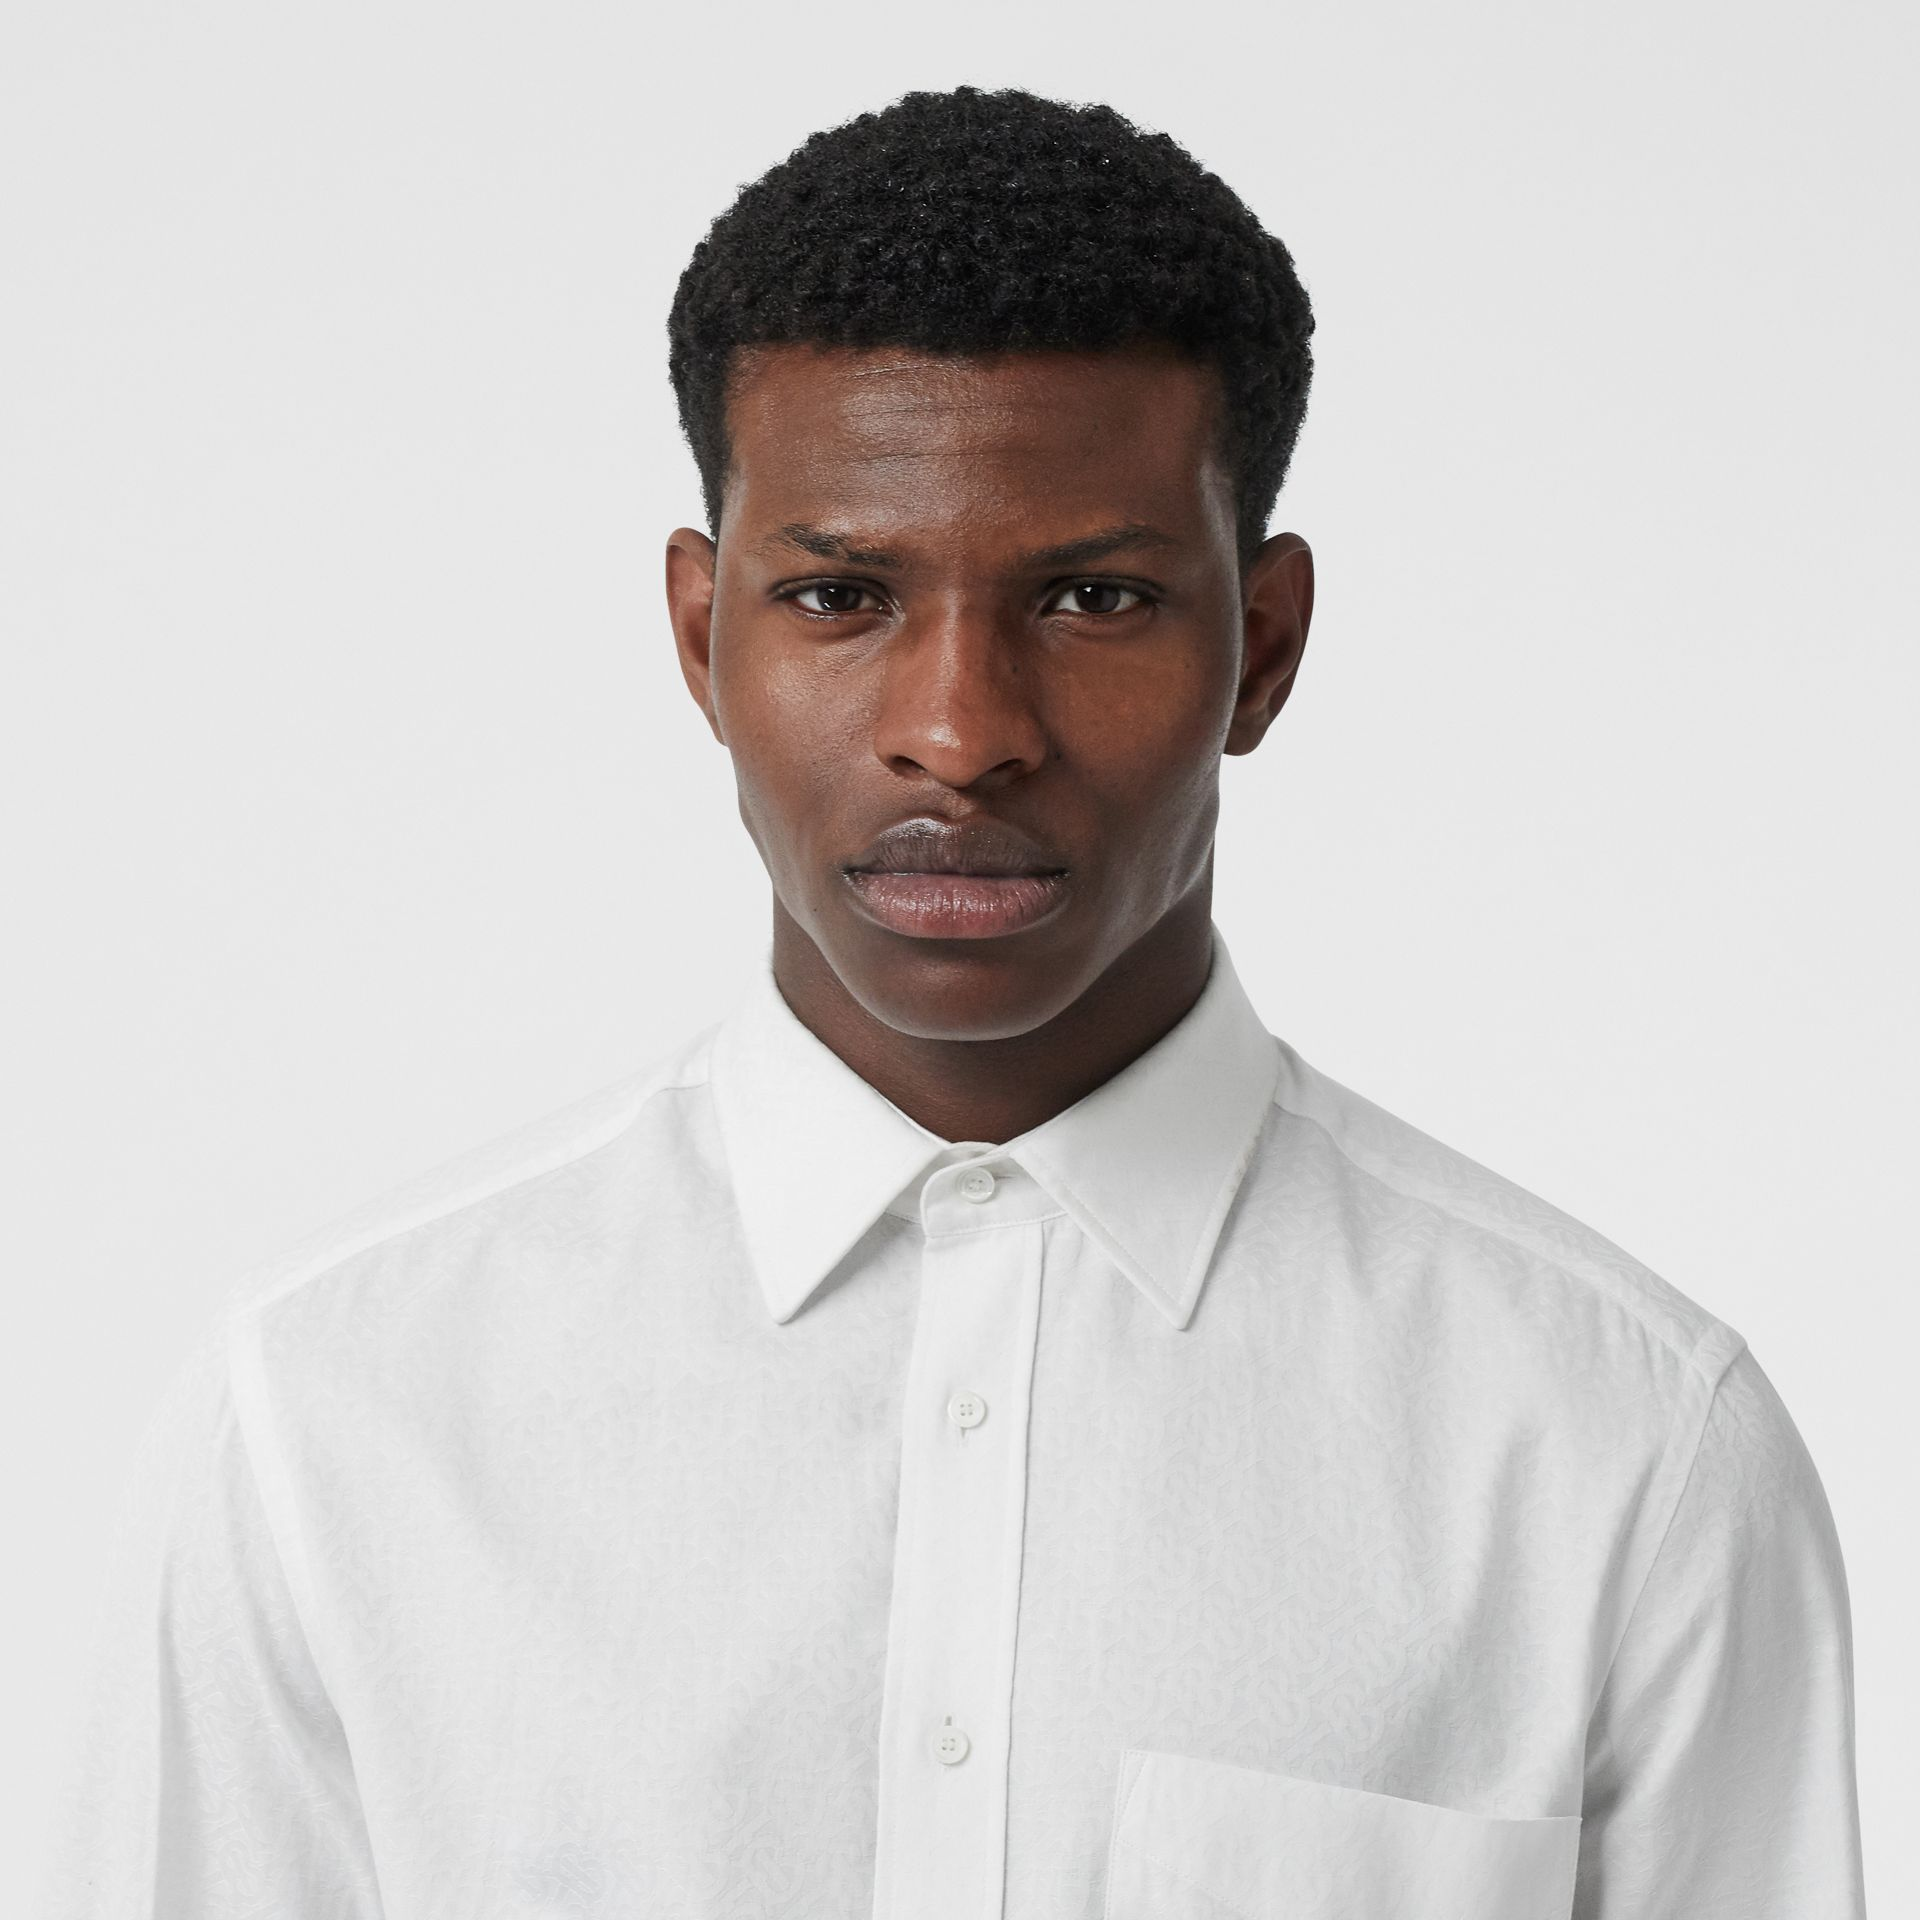 Classic Fit Monogram Cotton Jacquard Shirt in White - Men | Burberry - gallery image 1